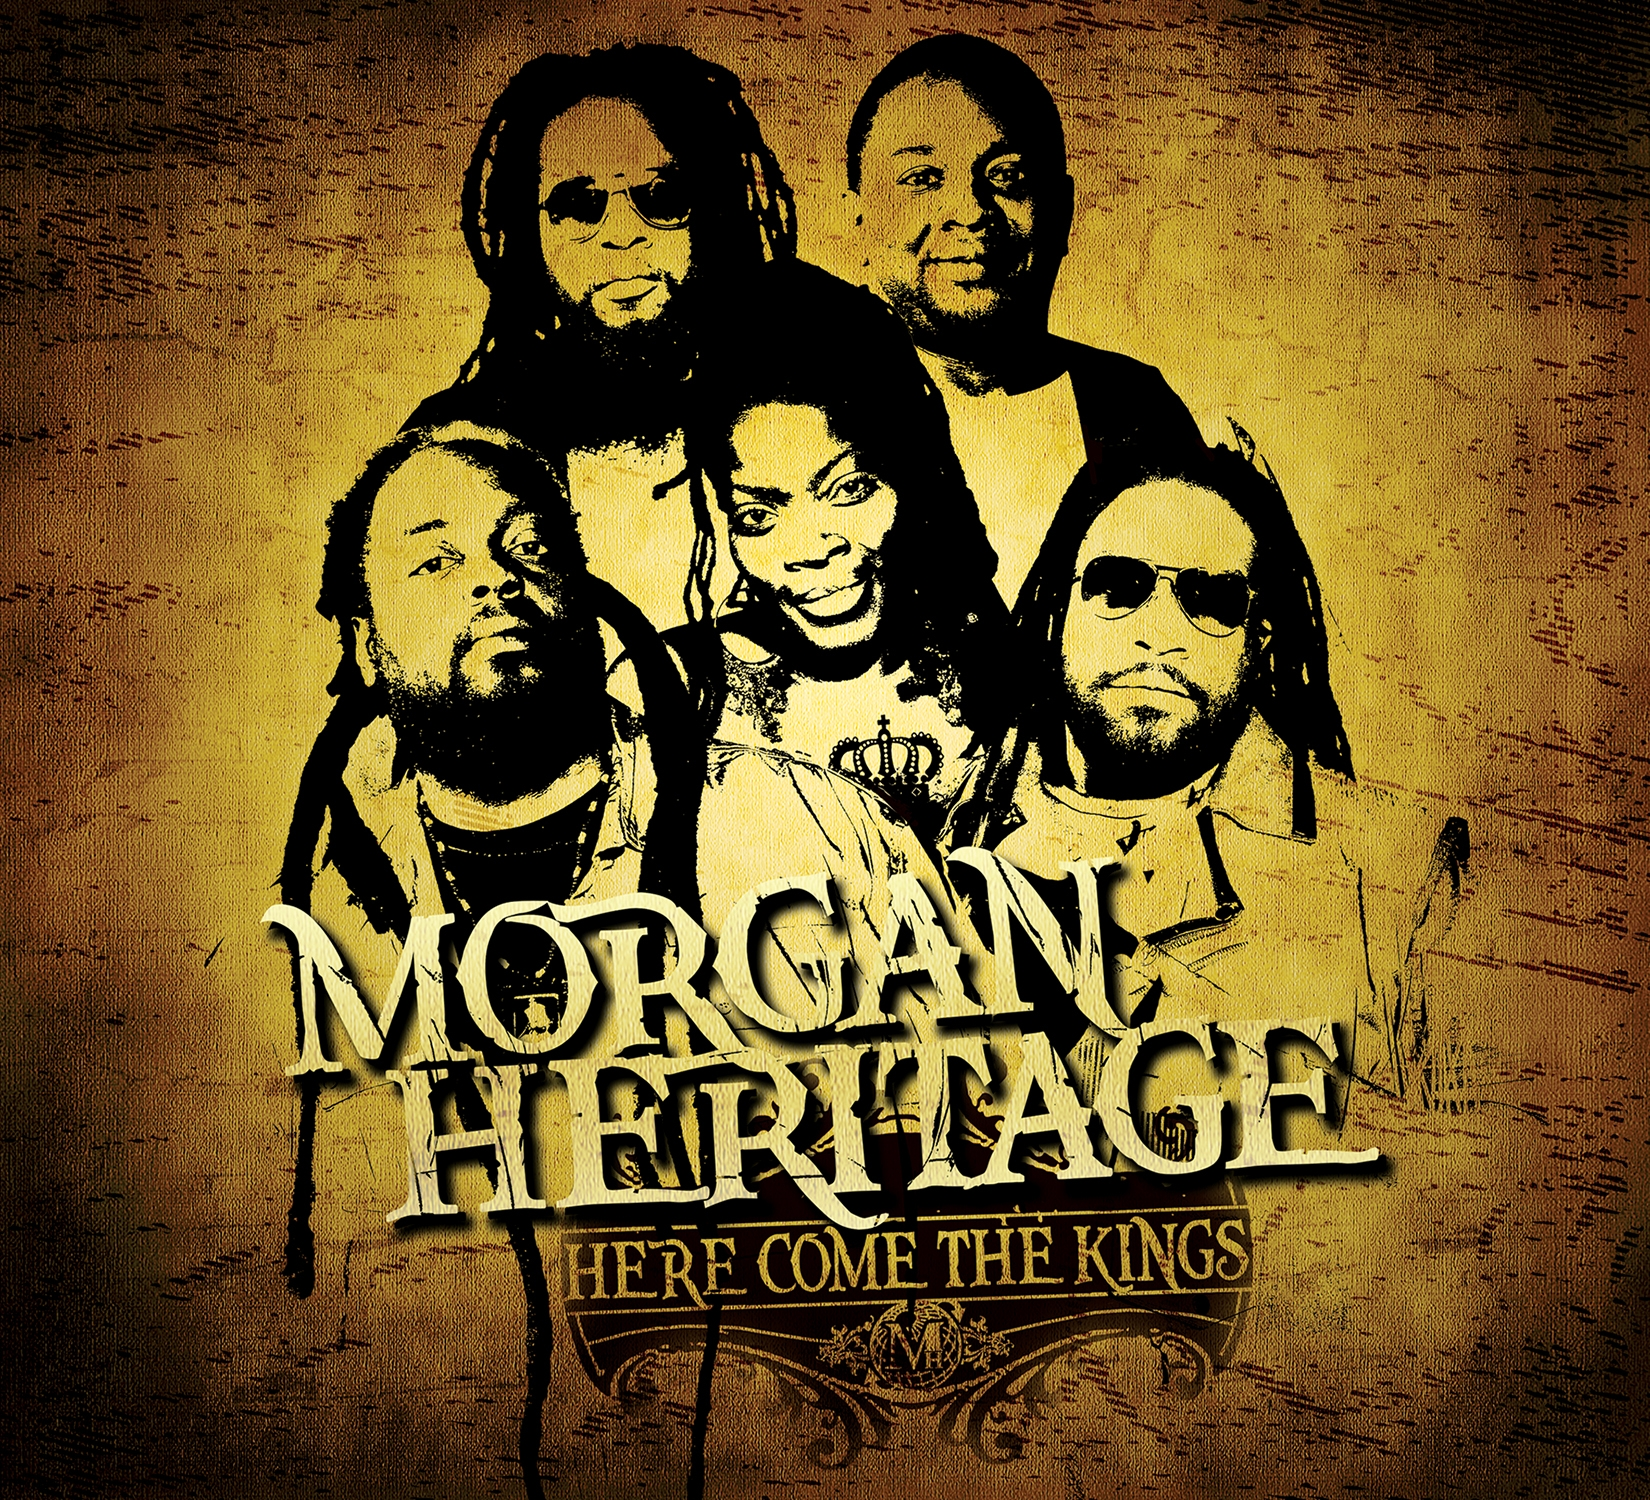 Morgan Heritage To Release Here Come The Kings Album